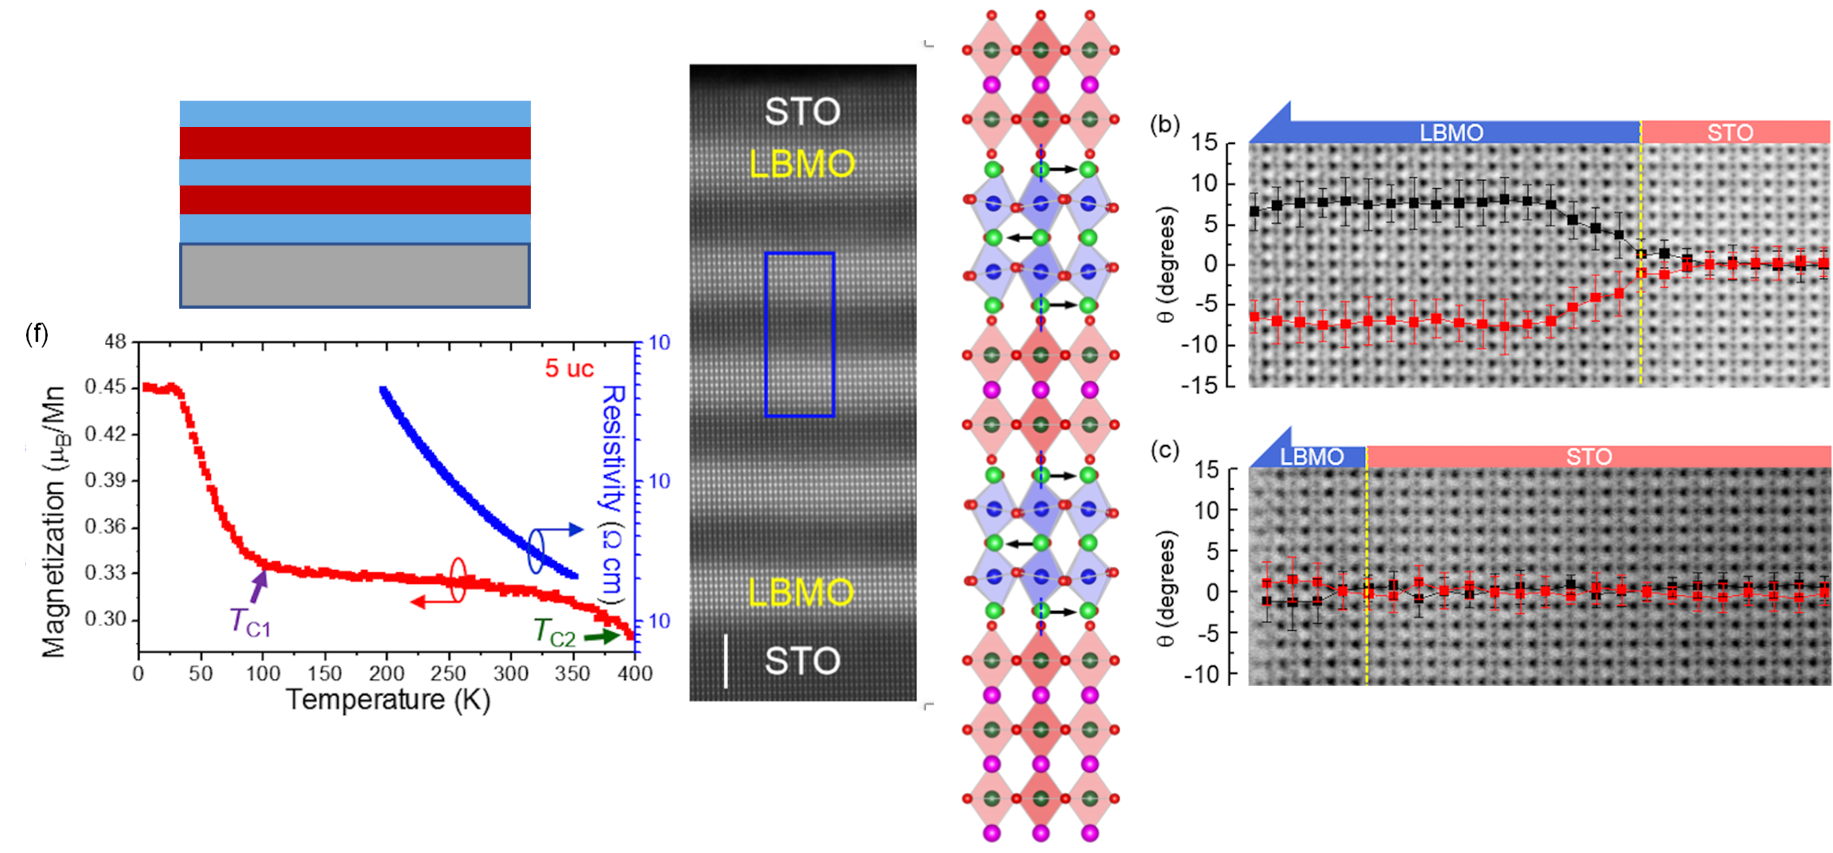 Fig. 3. Structure and Properties of the LBMO/STO superlattice system. Layers of LBMO and STO are shown in different formats with real images in centre and right hand side/ 40 uc and 5 uc LBMO show different levels of octahedral tilting depending on abilit